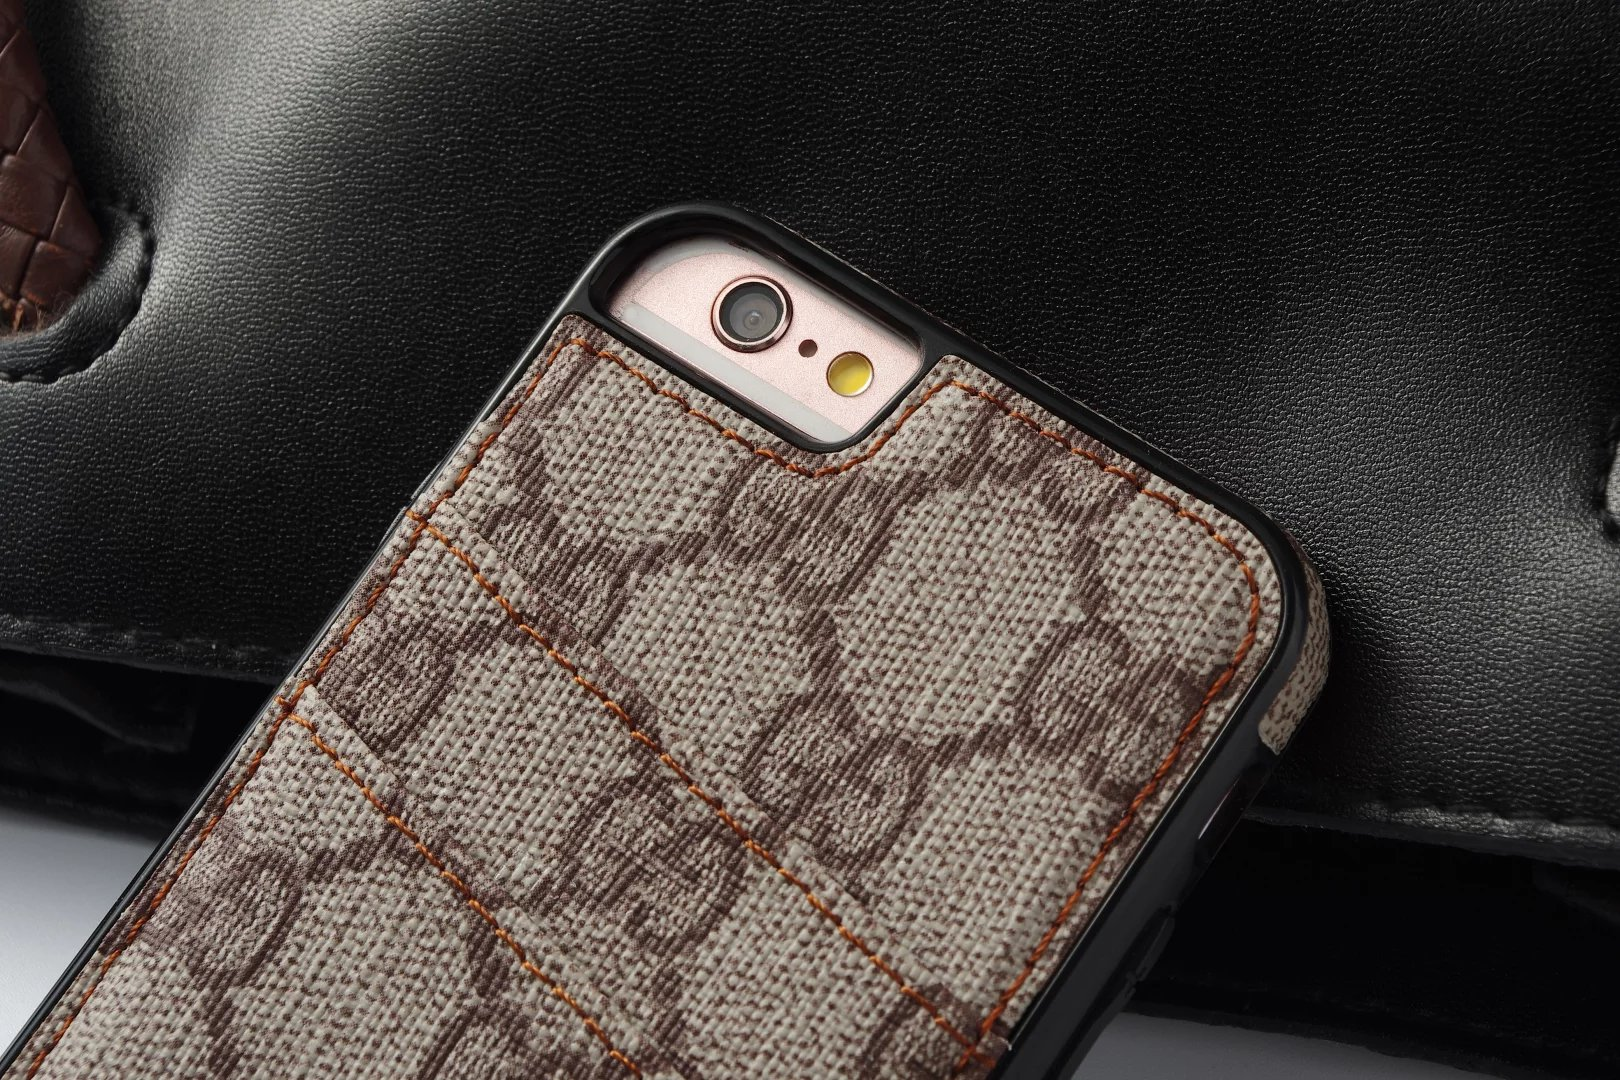 iphone hülle kaufen handyhüllen für iphone Louis Vuitton iphone 8 Plus hüllen 8 Plus fotos ipad hüllen designer 8 Pluslber handyhüllen machen handyhülle 8 Pluslbst gestalten iphone fotos iphone zu iphone wann kommt das iphone 8 Plus